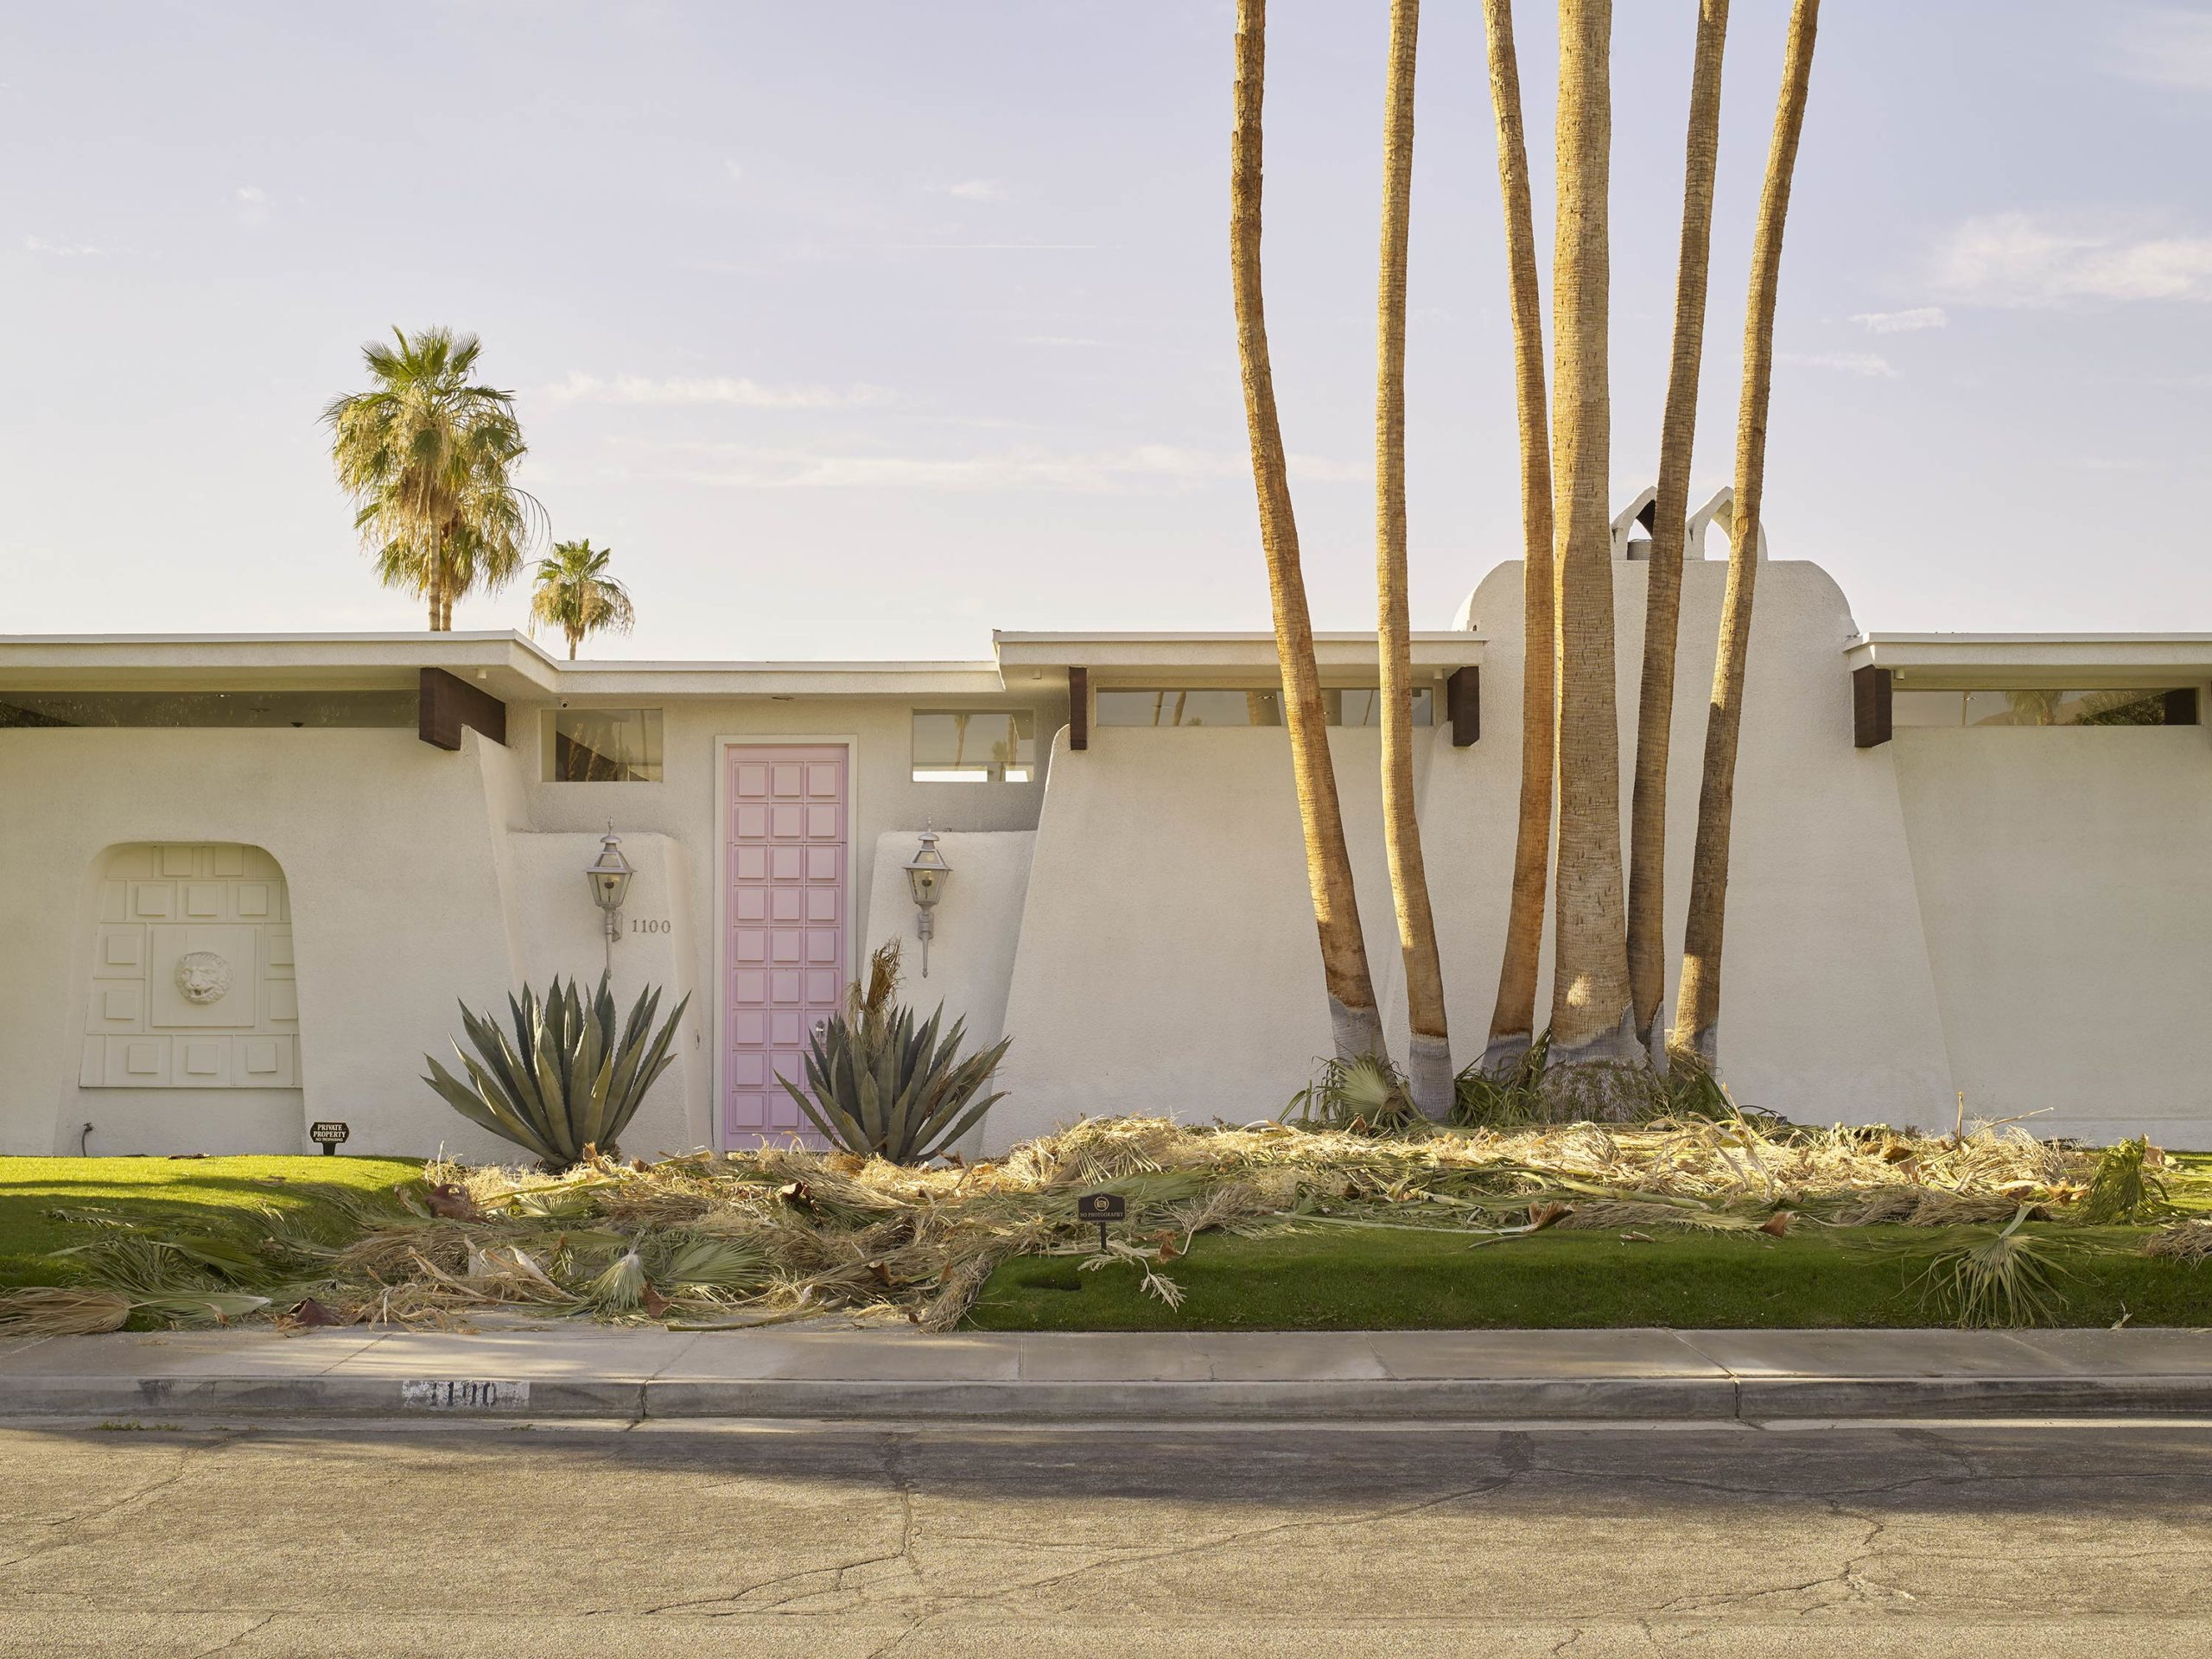 No Photography - I Heart Palm Springs Collection - Fine Art Photography by Toby Dixon